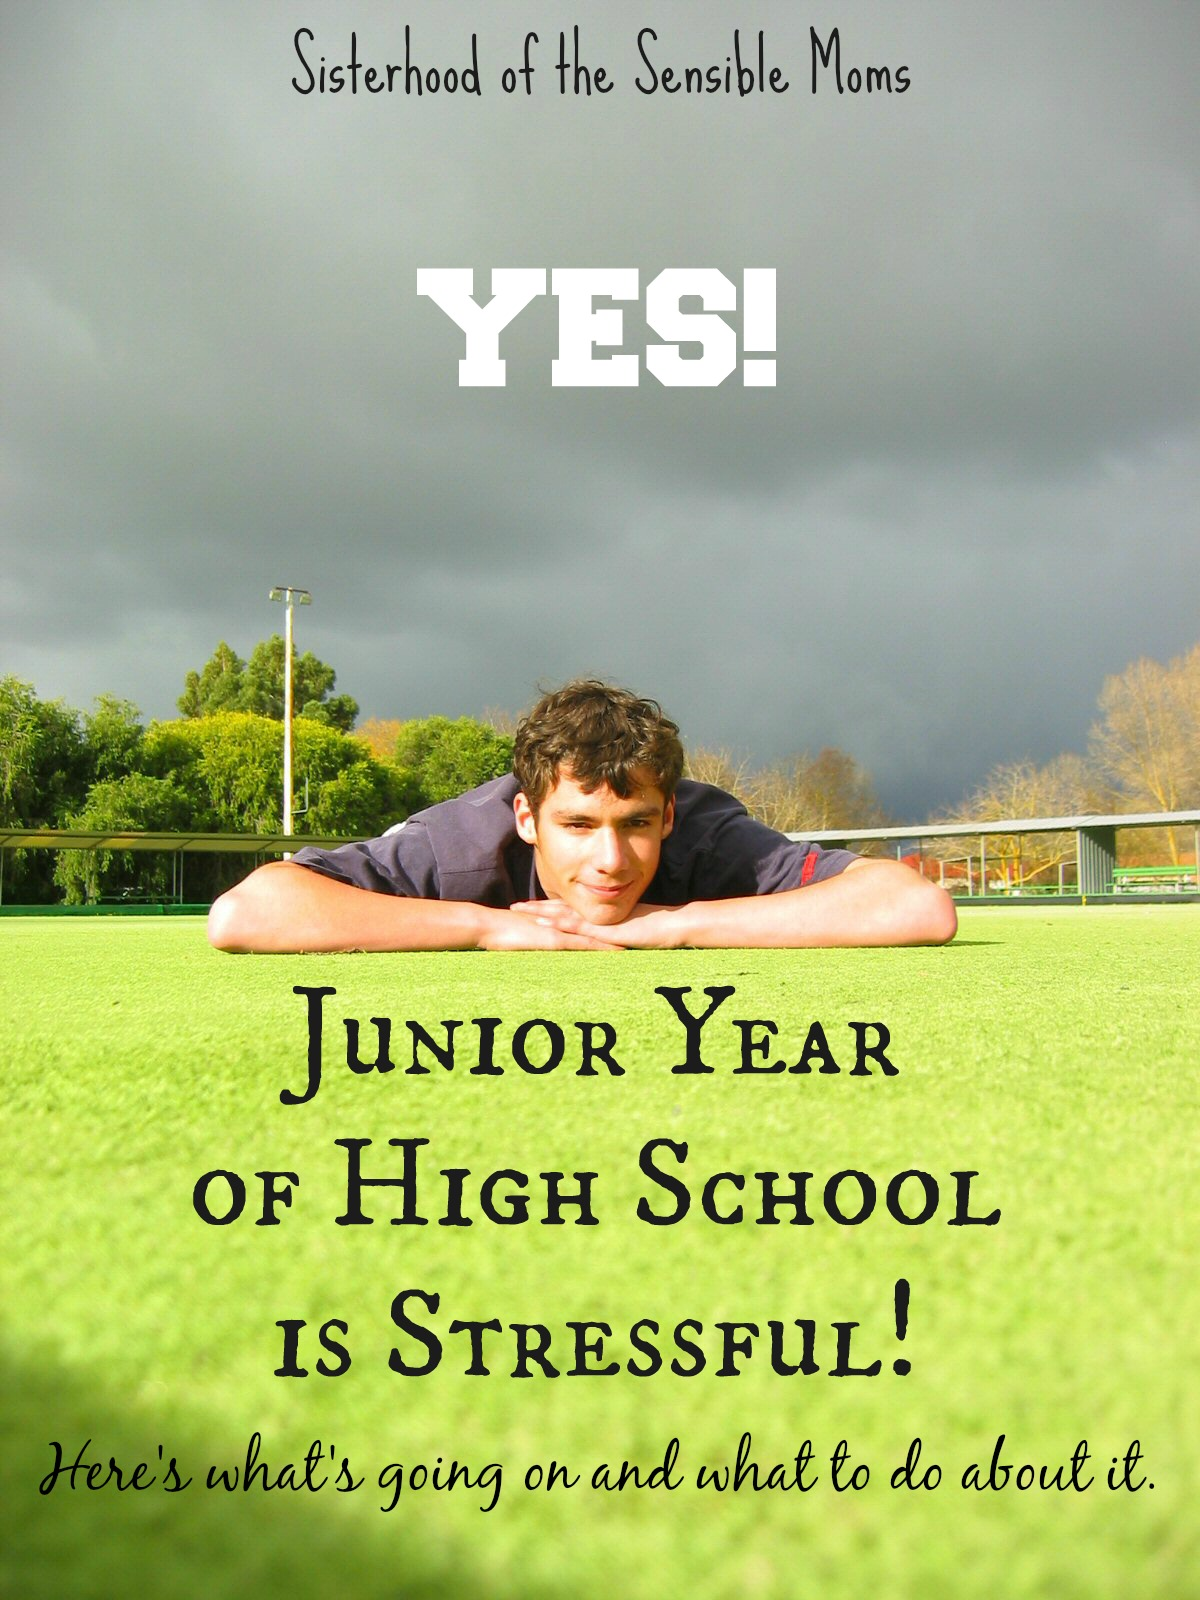 Yes! Junior year of high school is stressful, maybe the most stressful of them all. Here's what's going on and what to do about it. | Teens | Parenting Advice | Sisterhood of the Sensible Moms